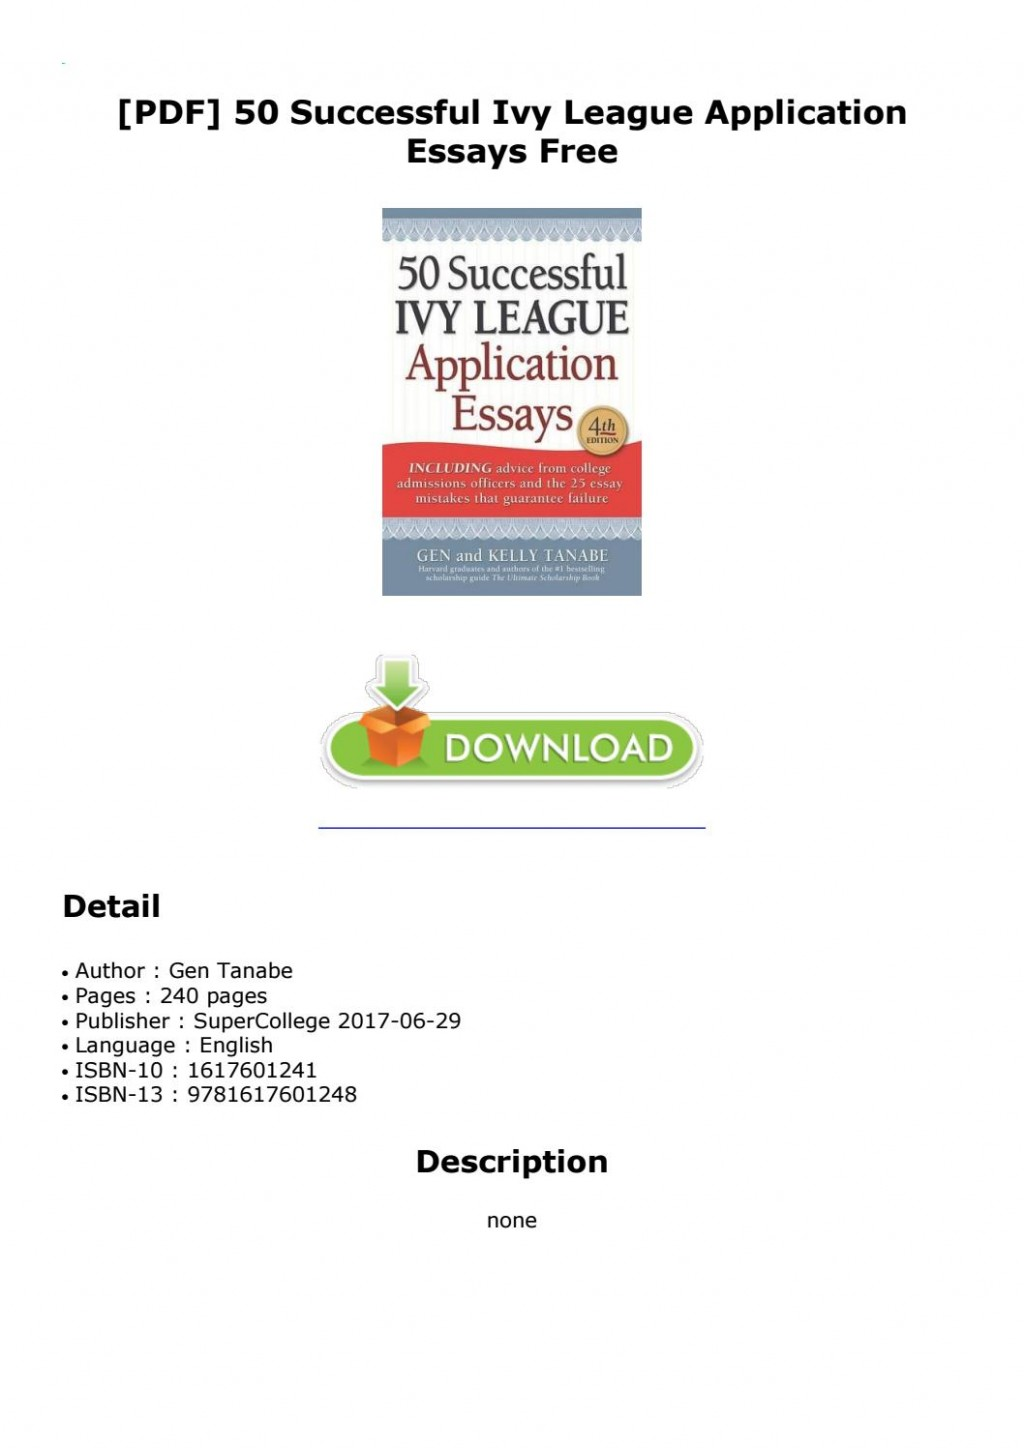 005 Successful Harvard Application Essays Pdf Page 1 Essay Impressive 50 Free 4th Edition Download Large